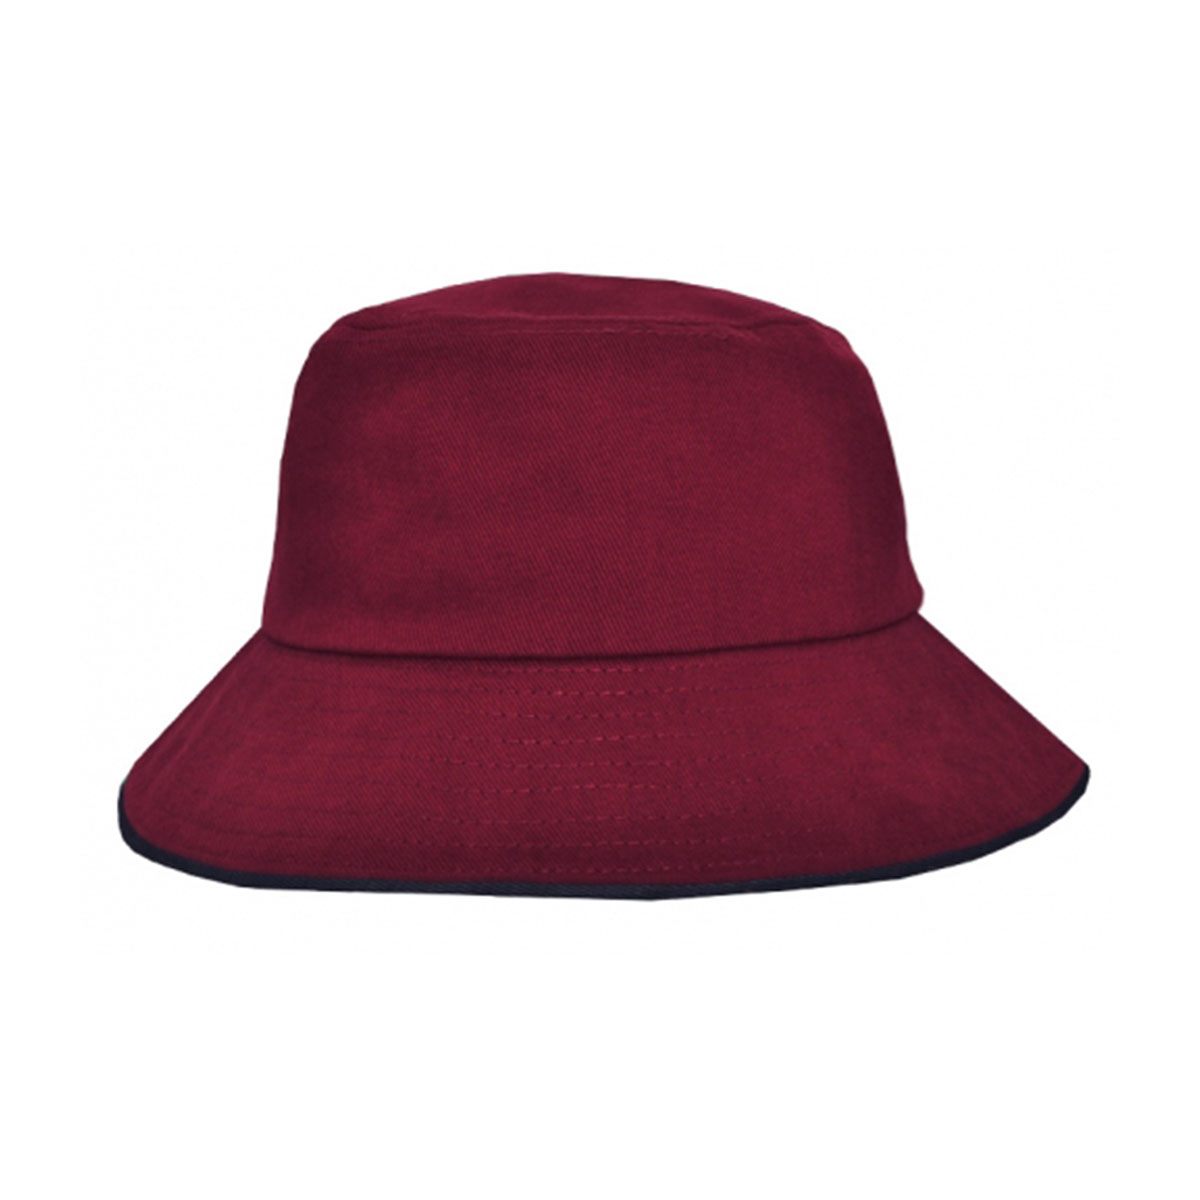 Bucket Hat Sandwich Design-Maroon / Navy